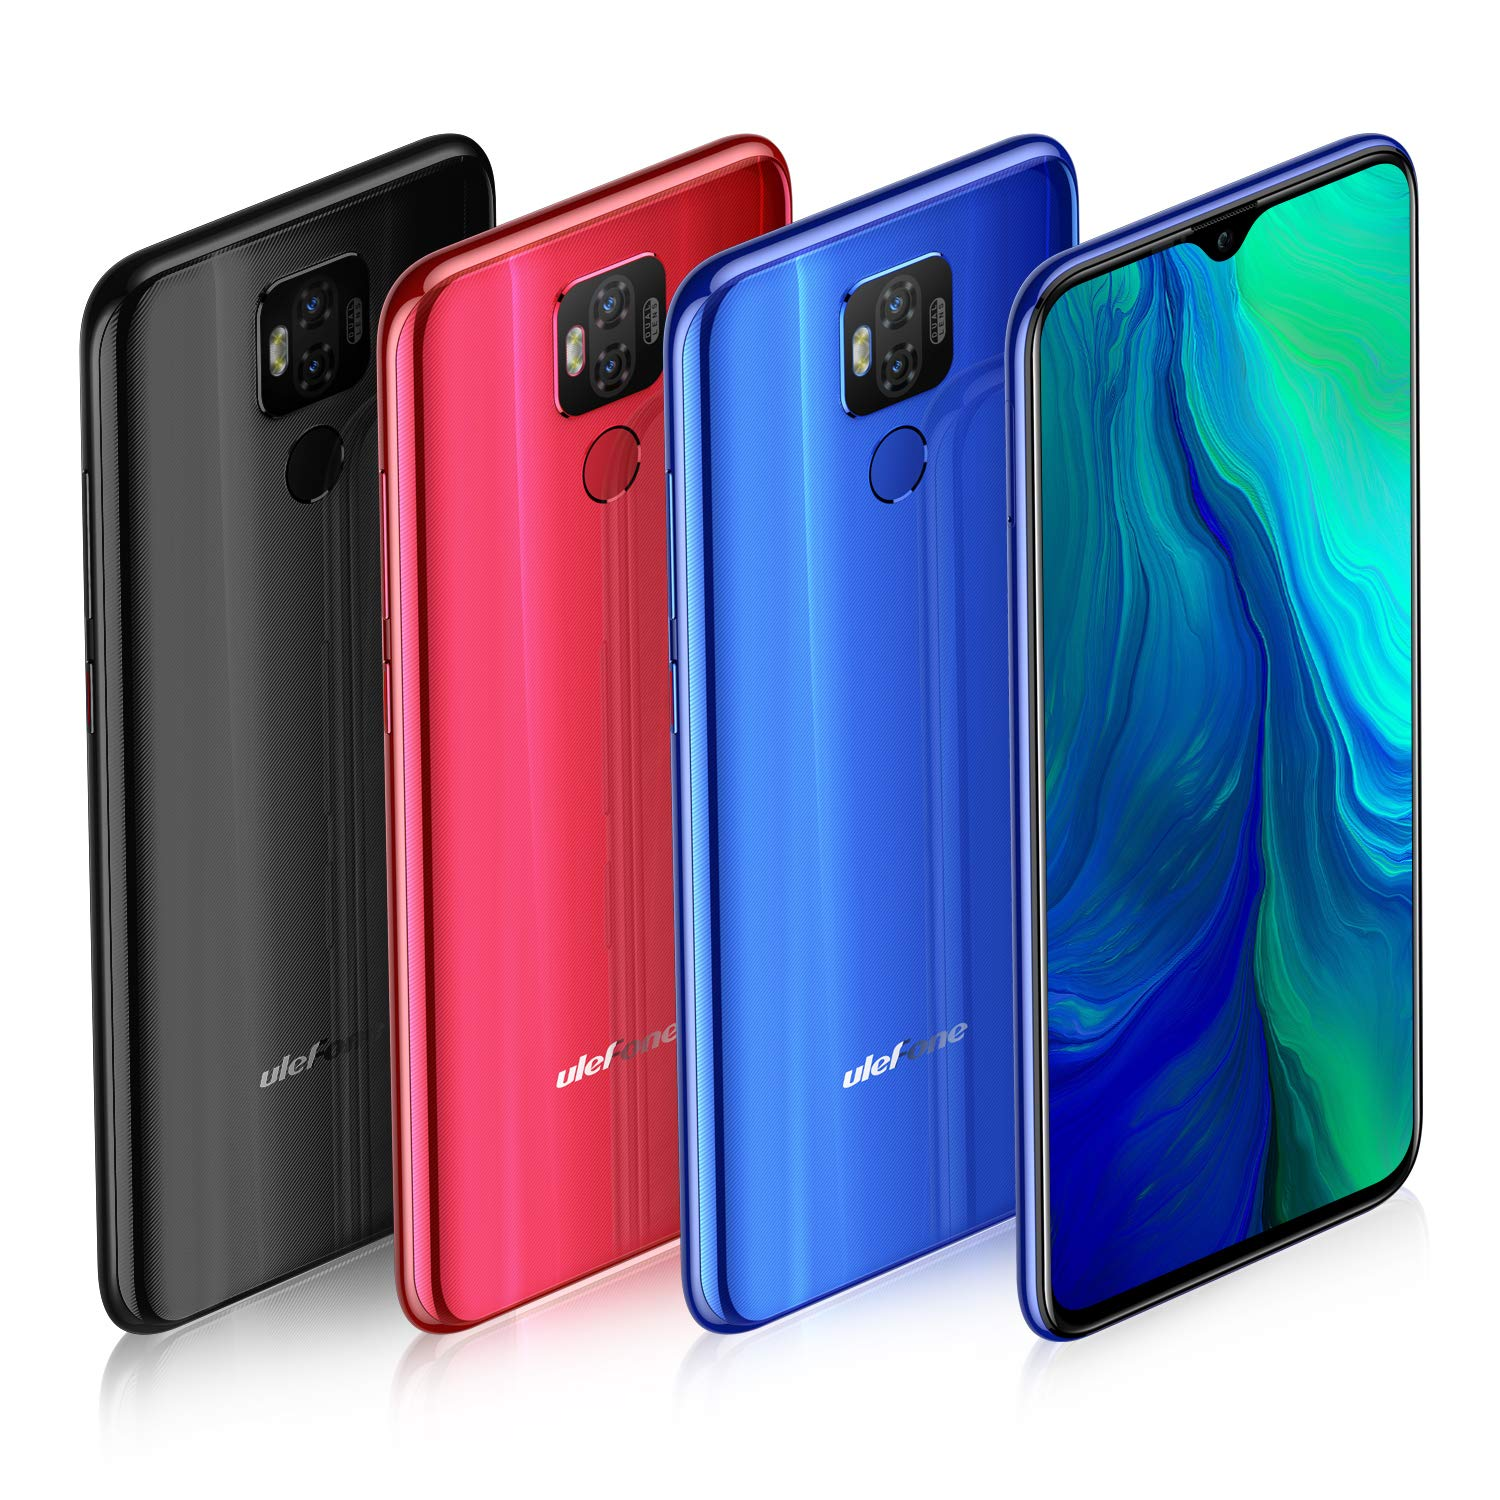 The 25 Best Smartphones for Seniors in 2019 - Assisted